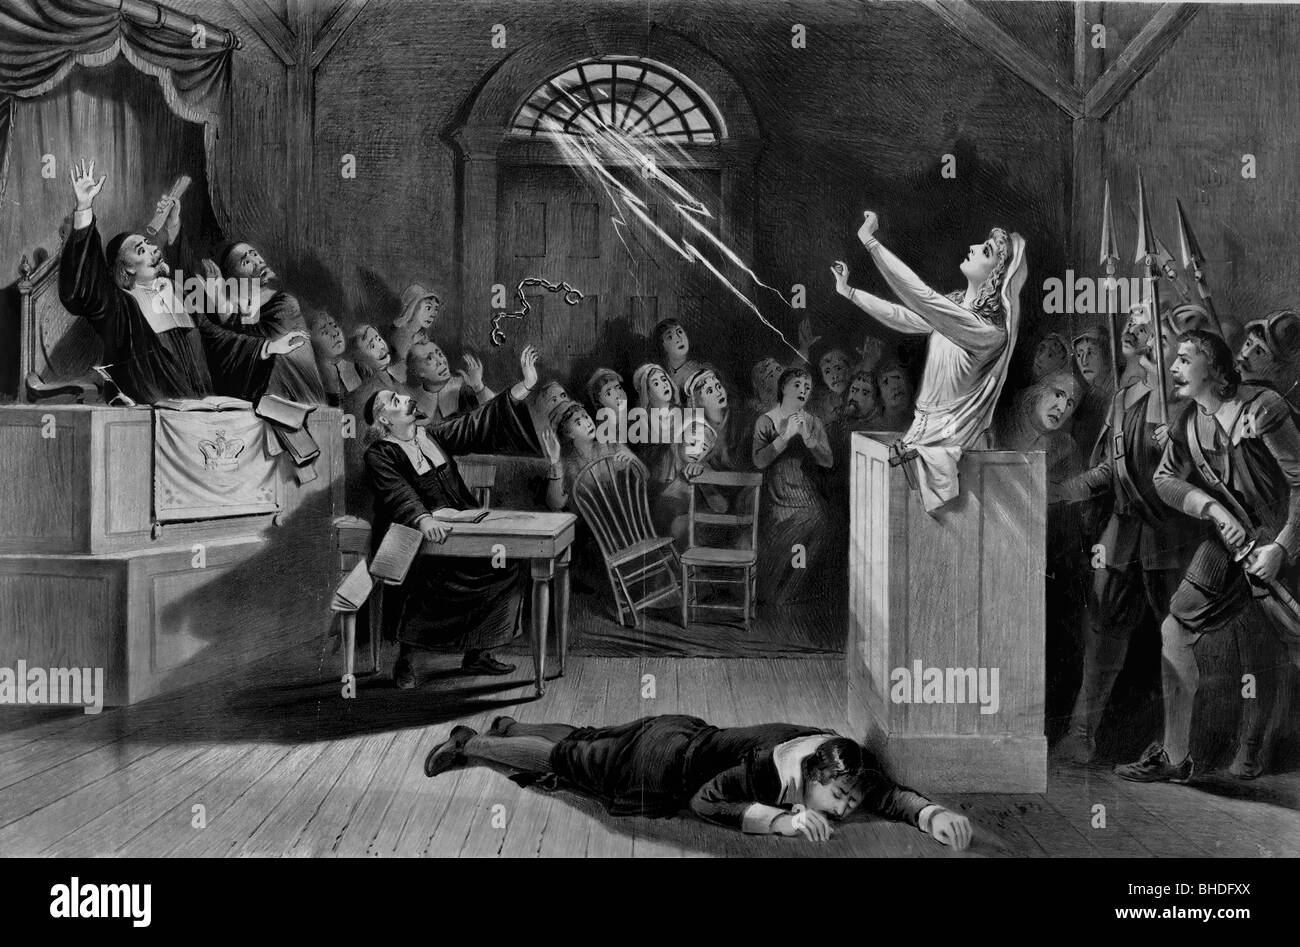 John Proctor: First Male Accused Witch of the Salem Witch Trials